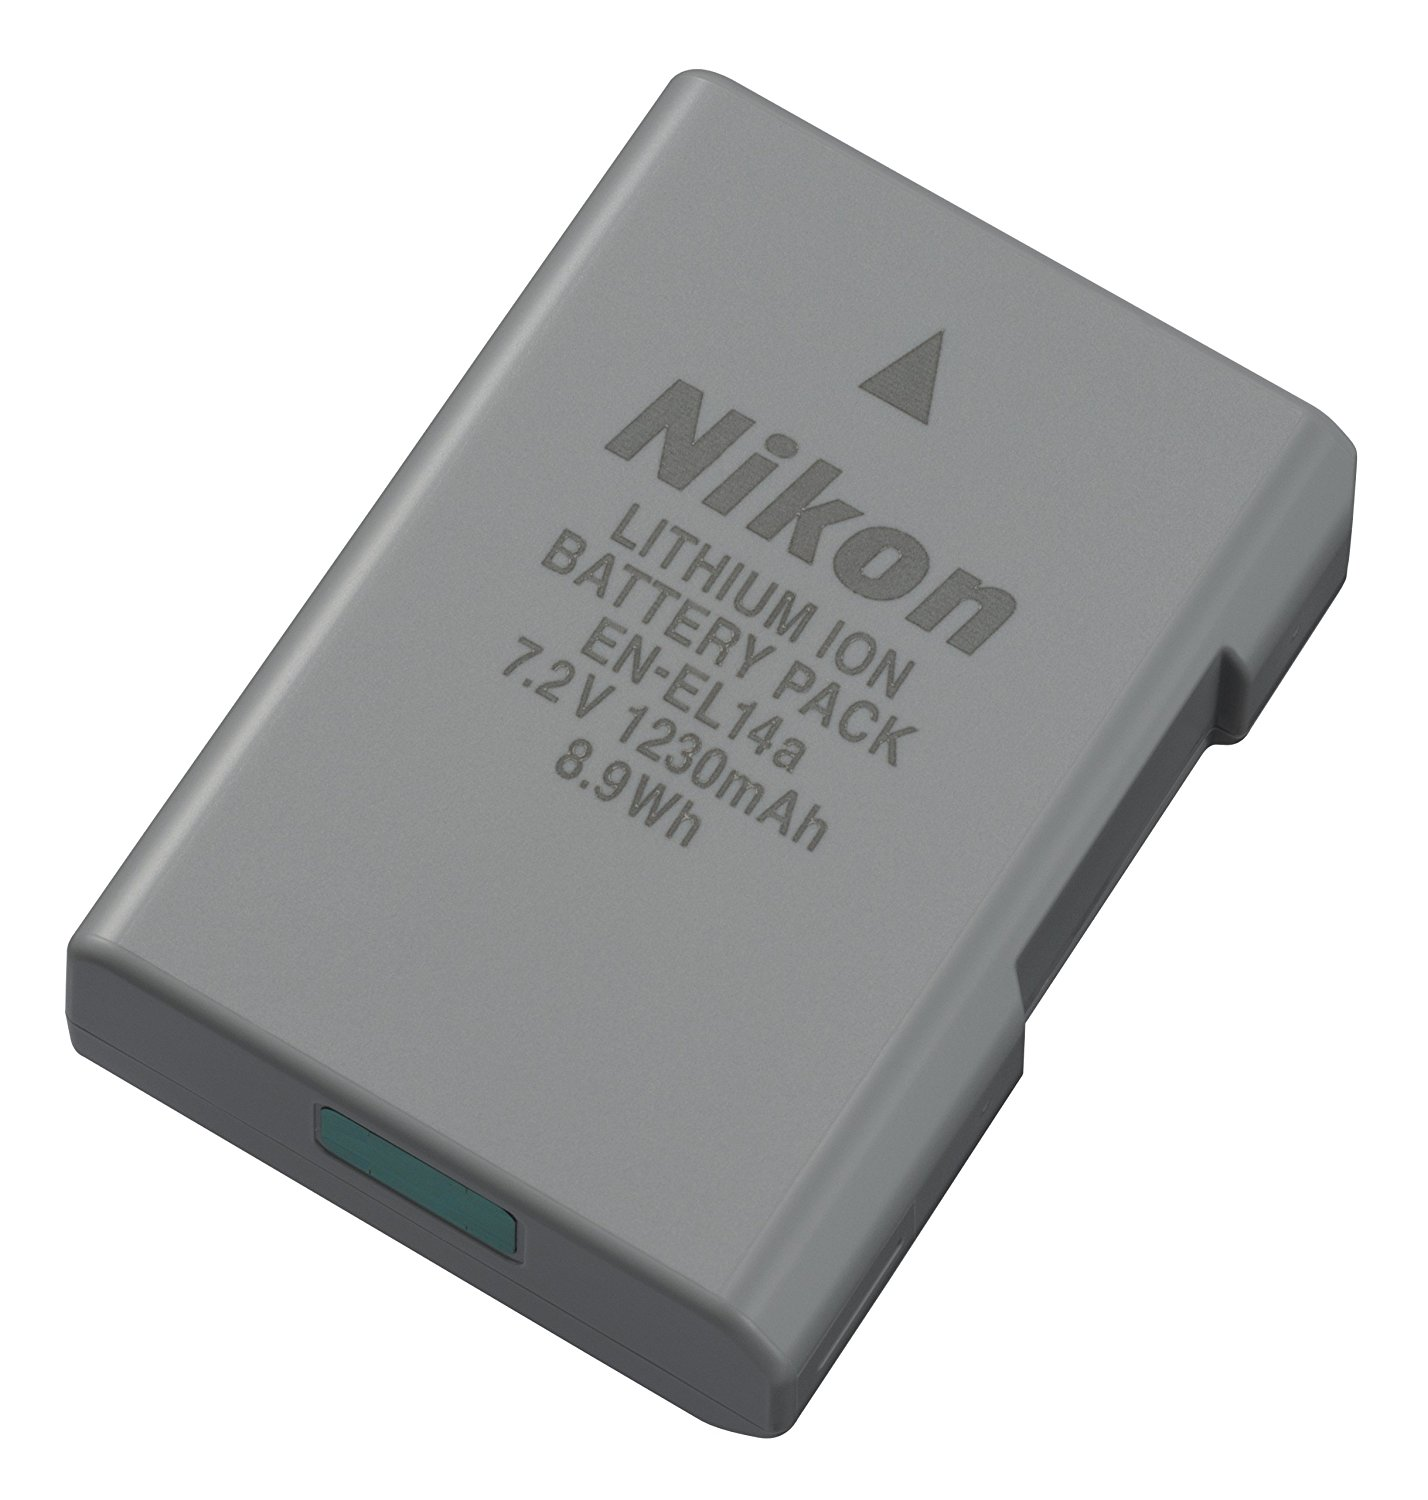 3. Nikon 27126 EN-EL 14A Rechargeable Li-Ion Battery